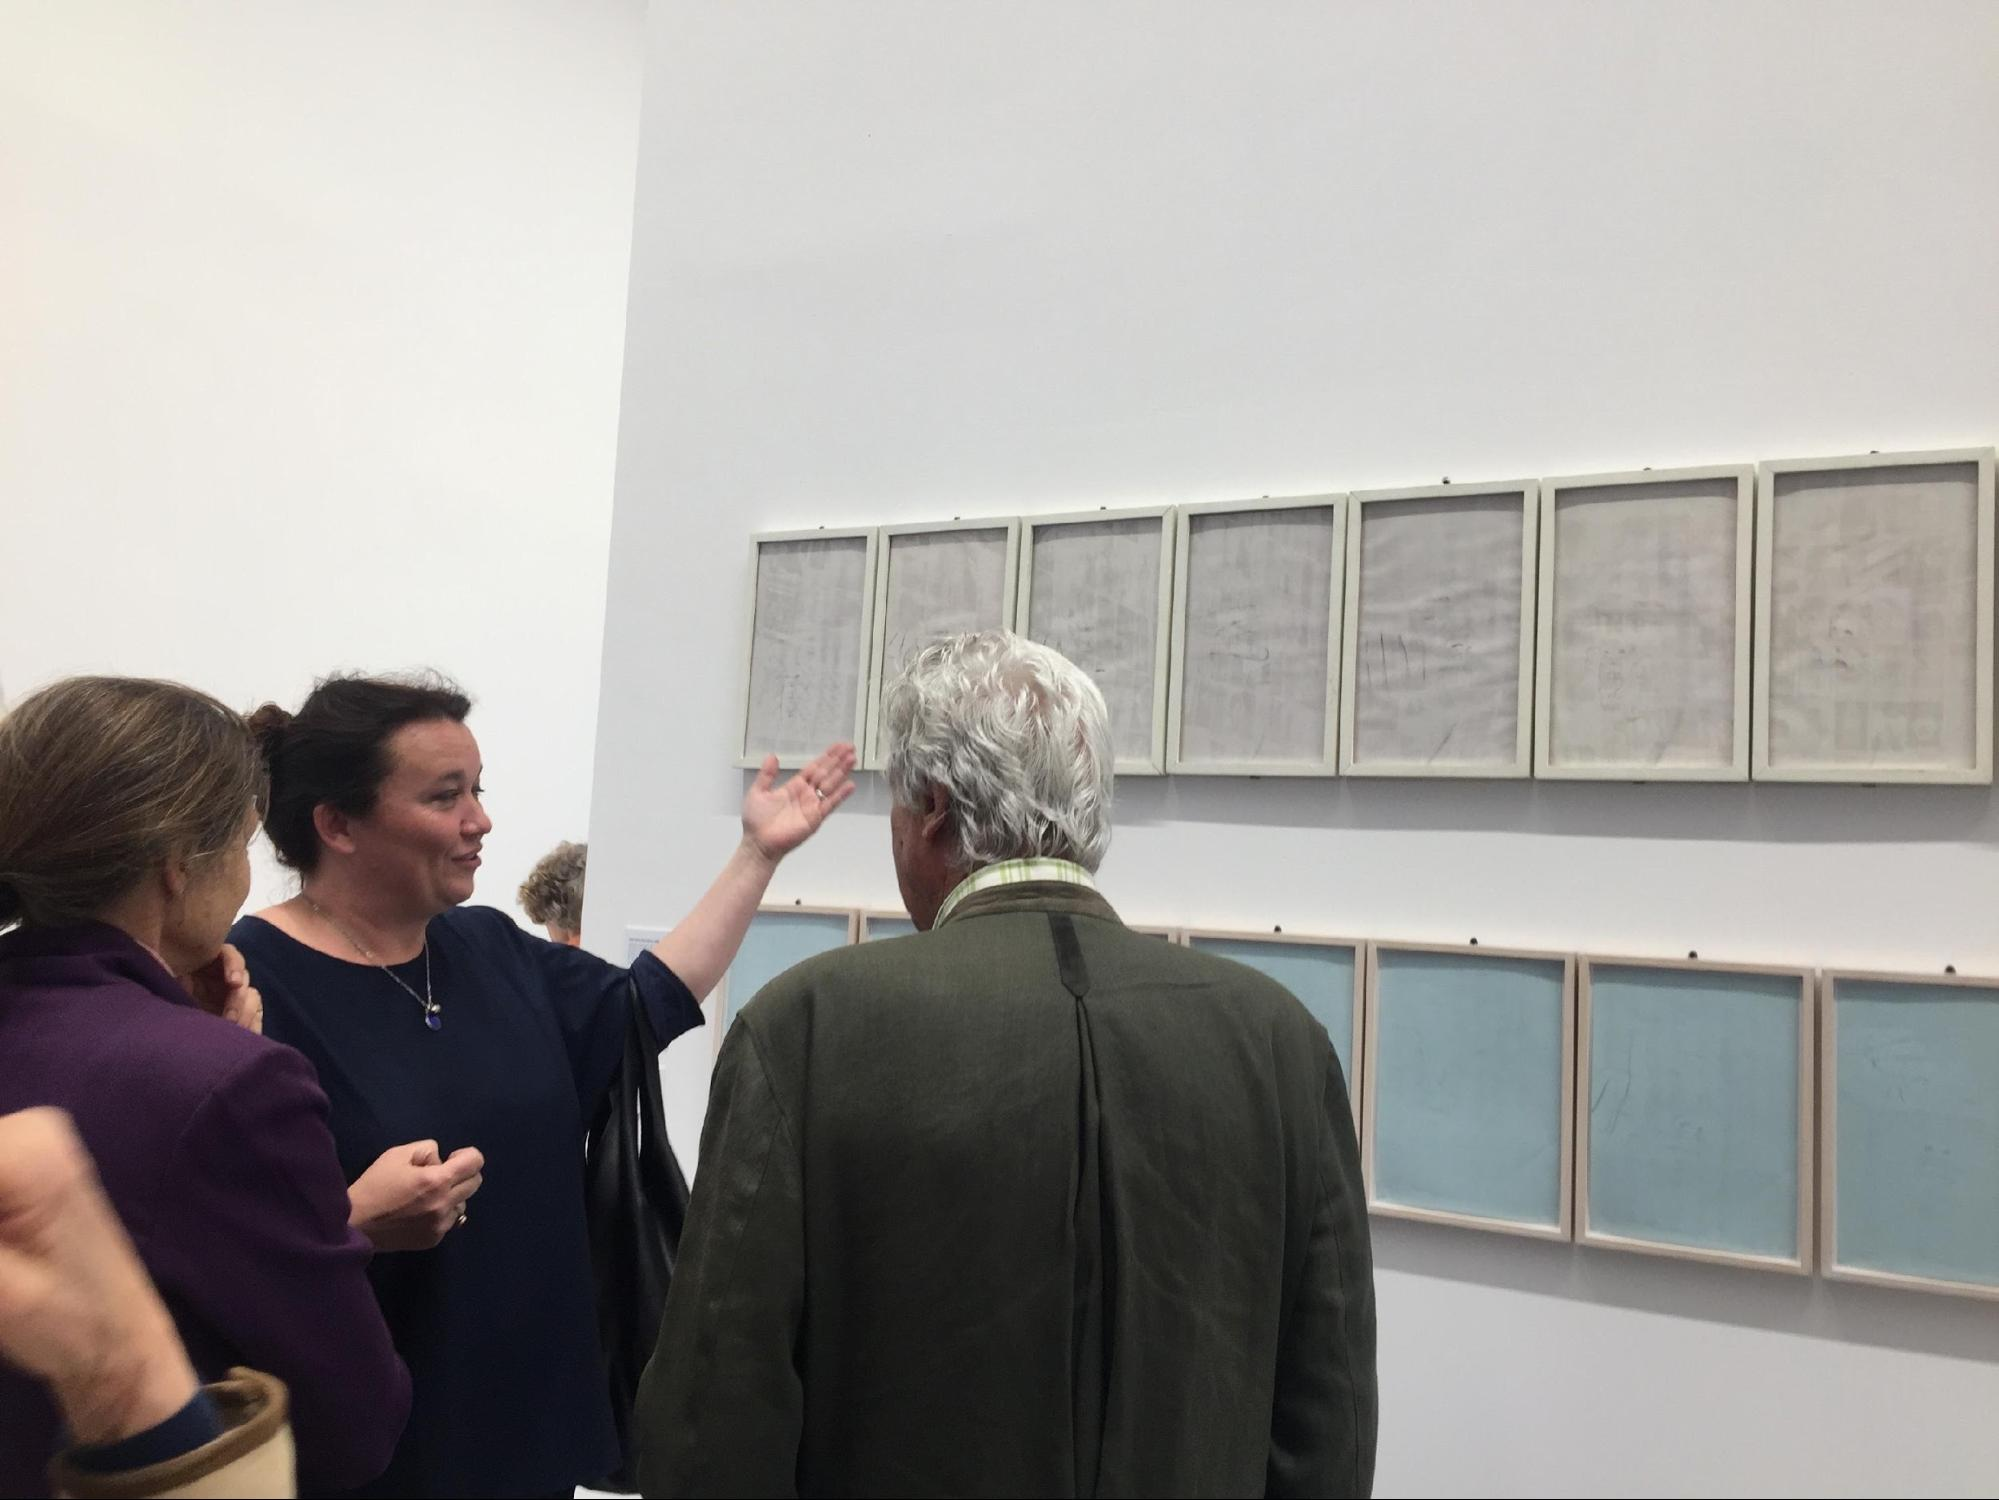 IN THE PHOTO:  AGATA BOETTI EXPLAINING ALIGHIERO'S BOETTI FINGERSPELLING SELF-PORTRAIT. (BIENNALE DI VENEZIA 2017) PHOTO CREDIT: OLIVA SARTOGO